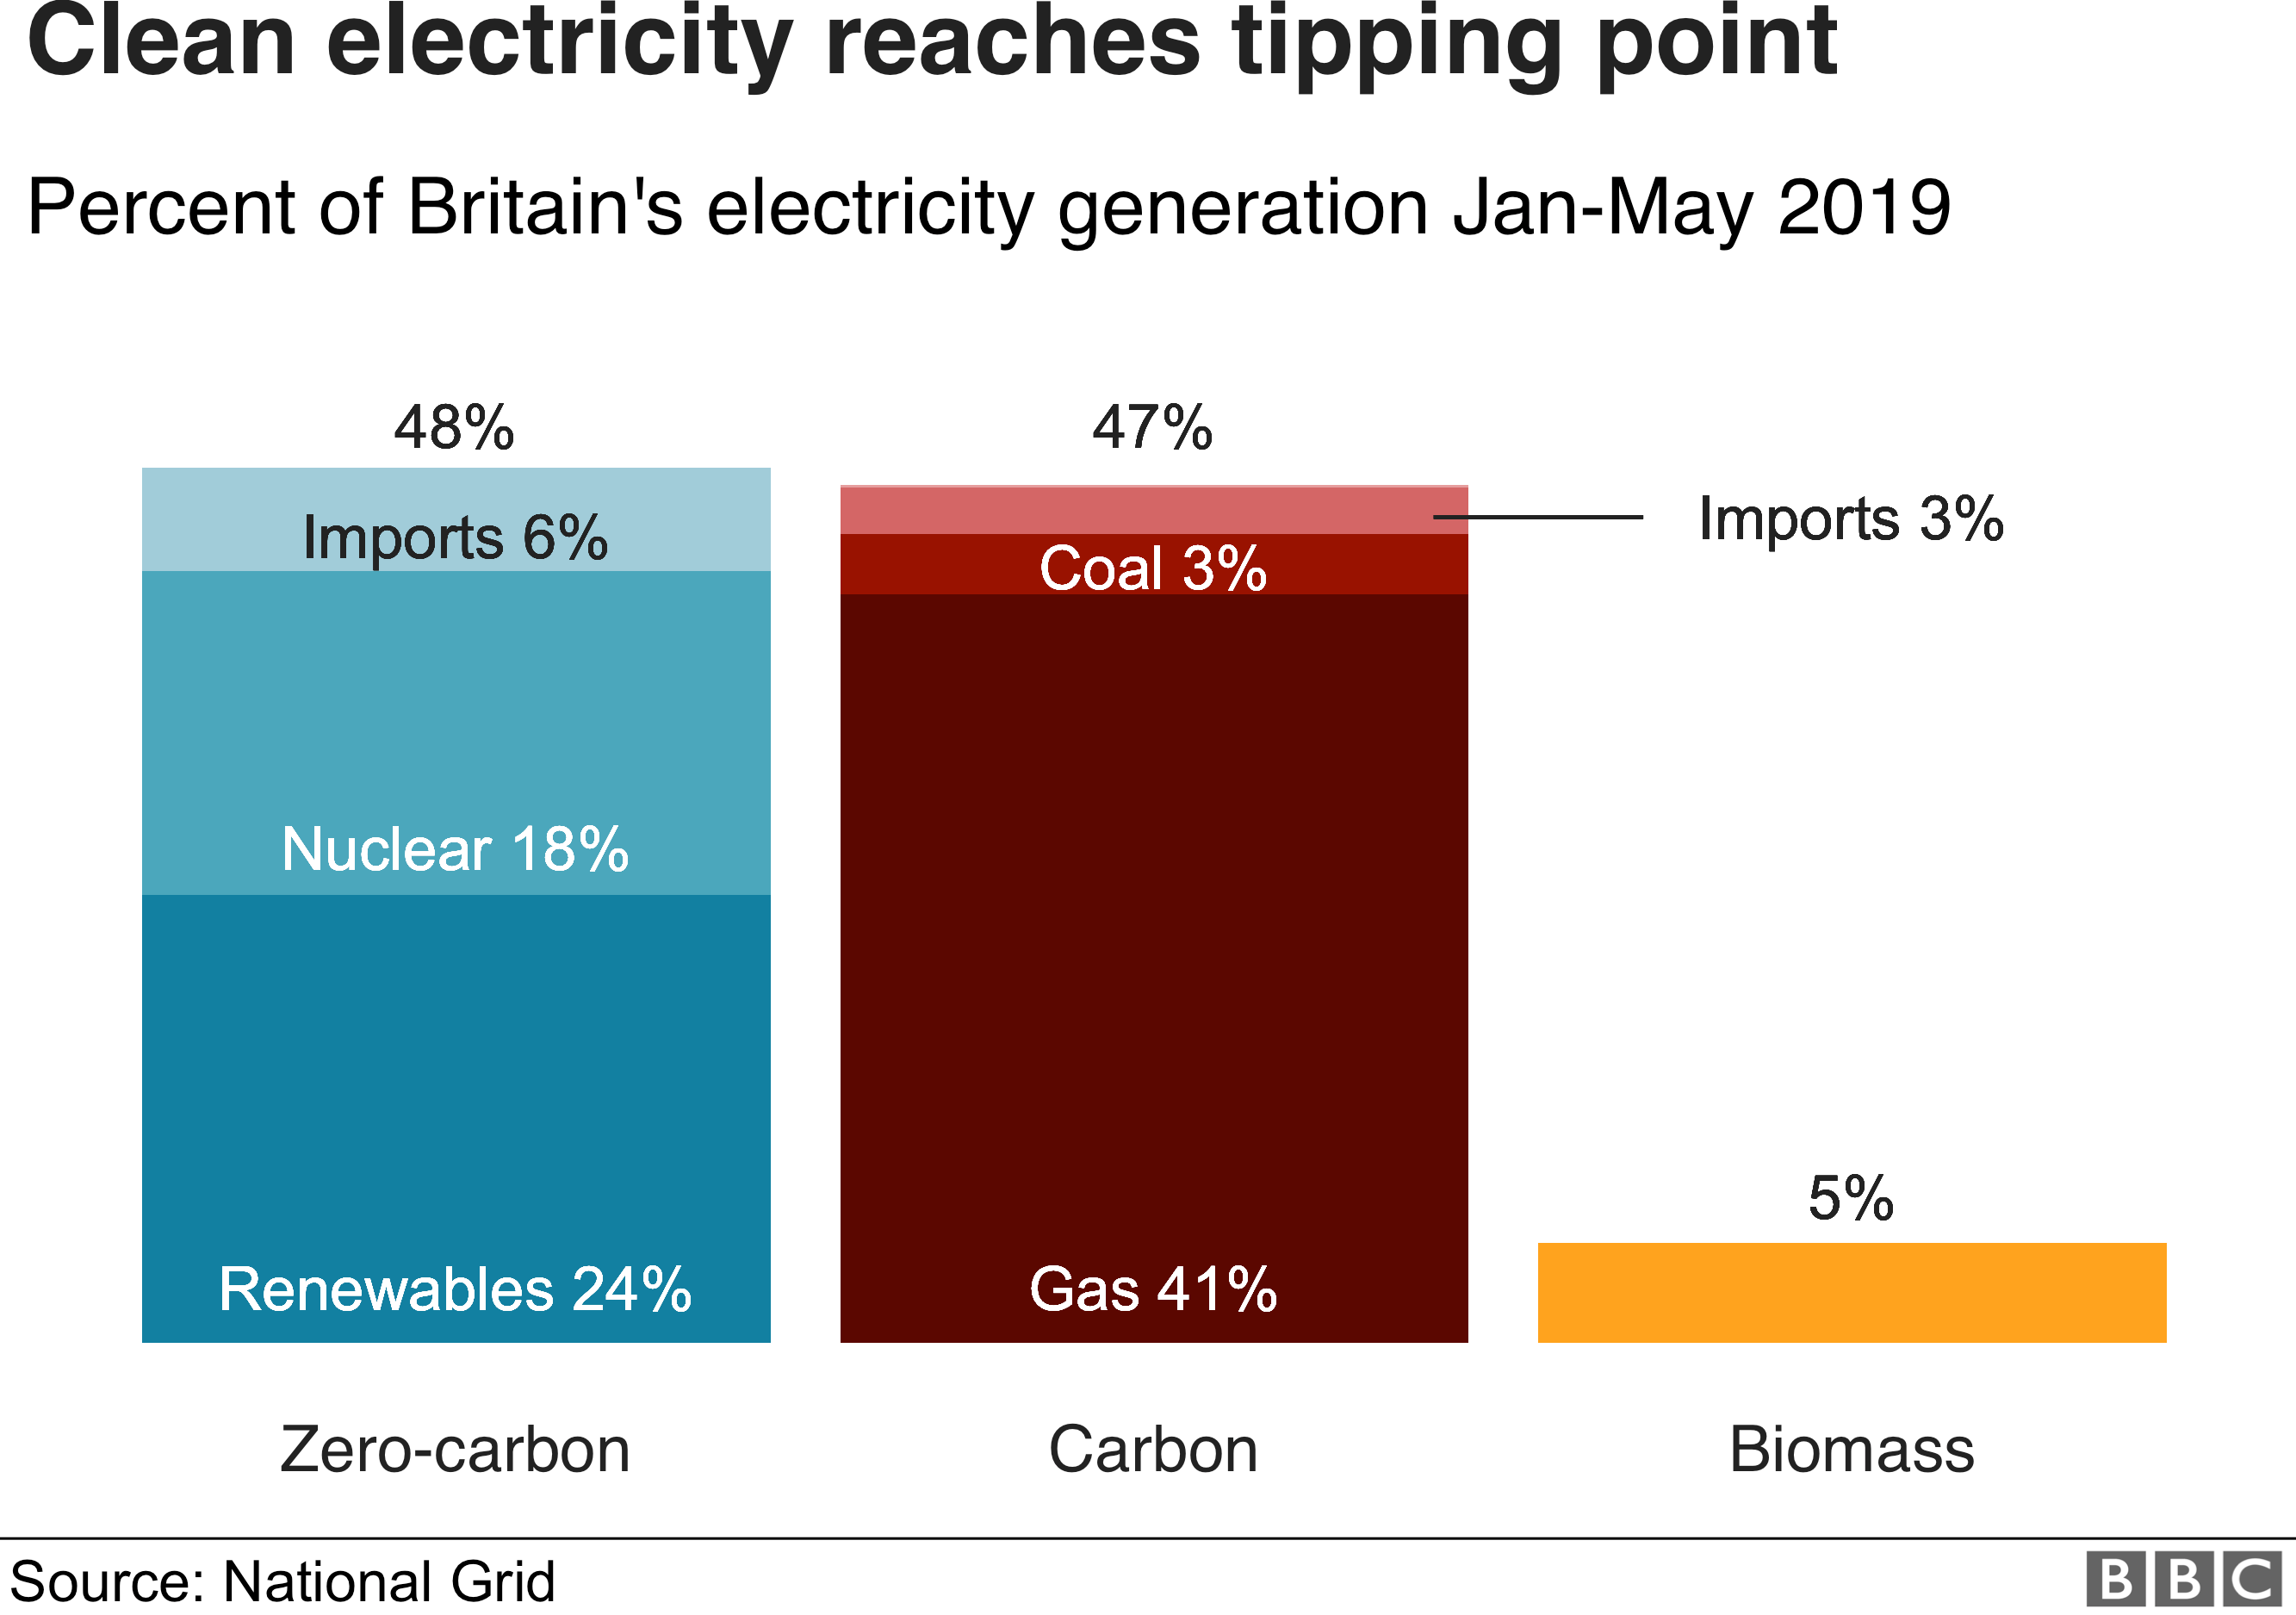 Clean energy reaches tipping point